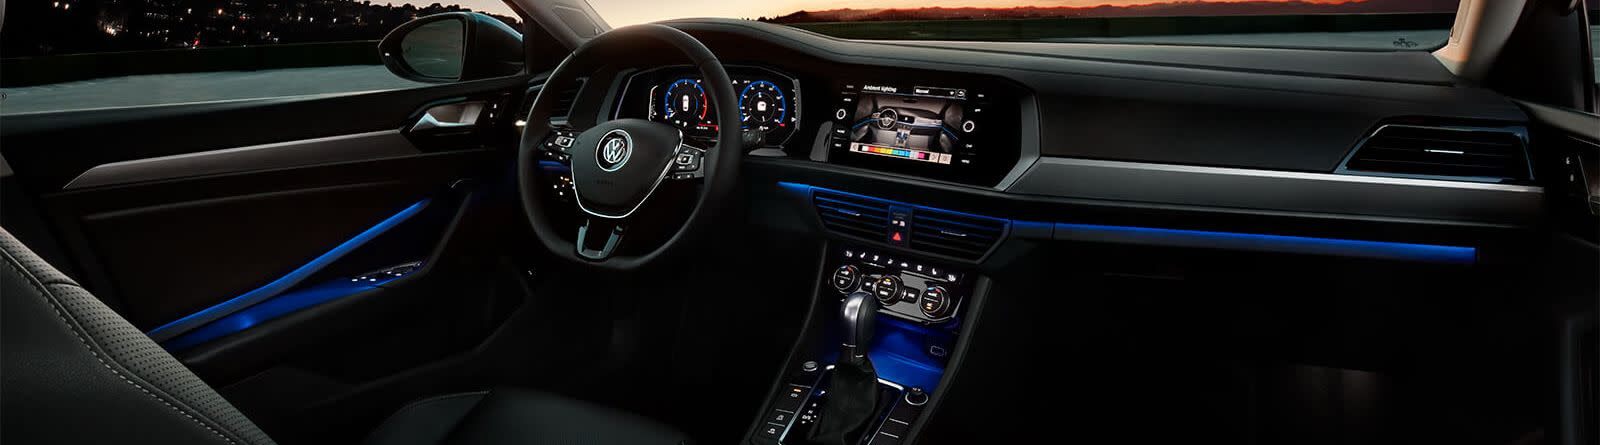 2019 Volkswagen Jetta Ambient Lighting